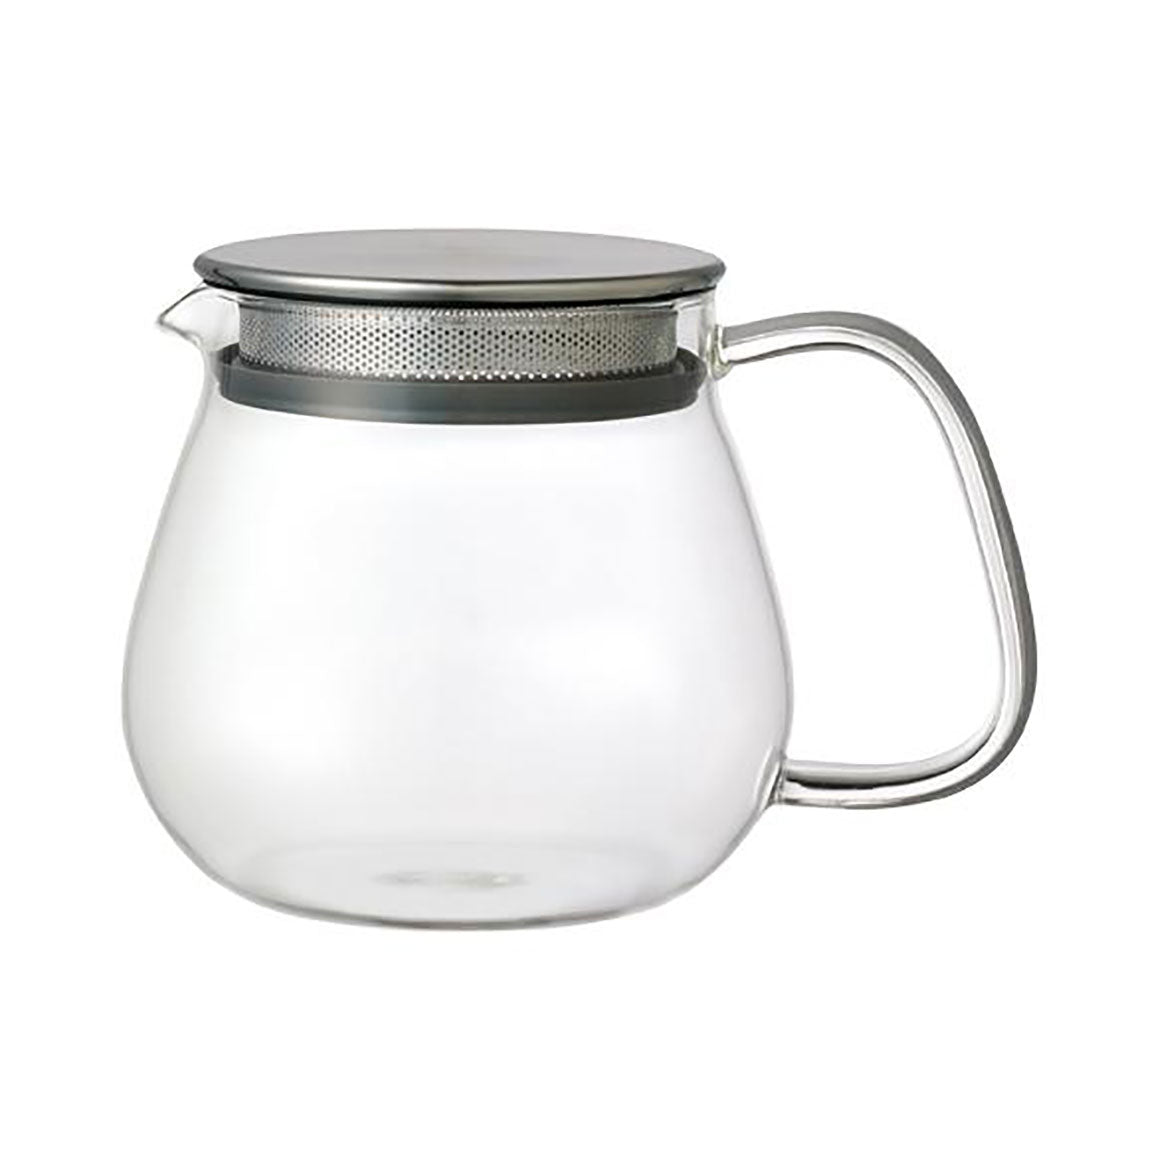 Kinto-One-Touch-Unitea-Teapot-460ml